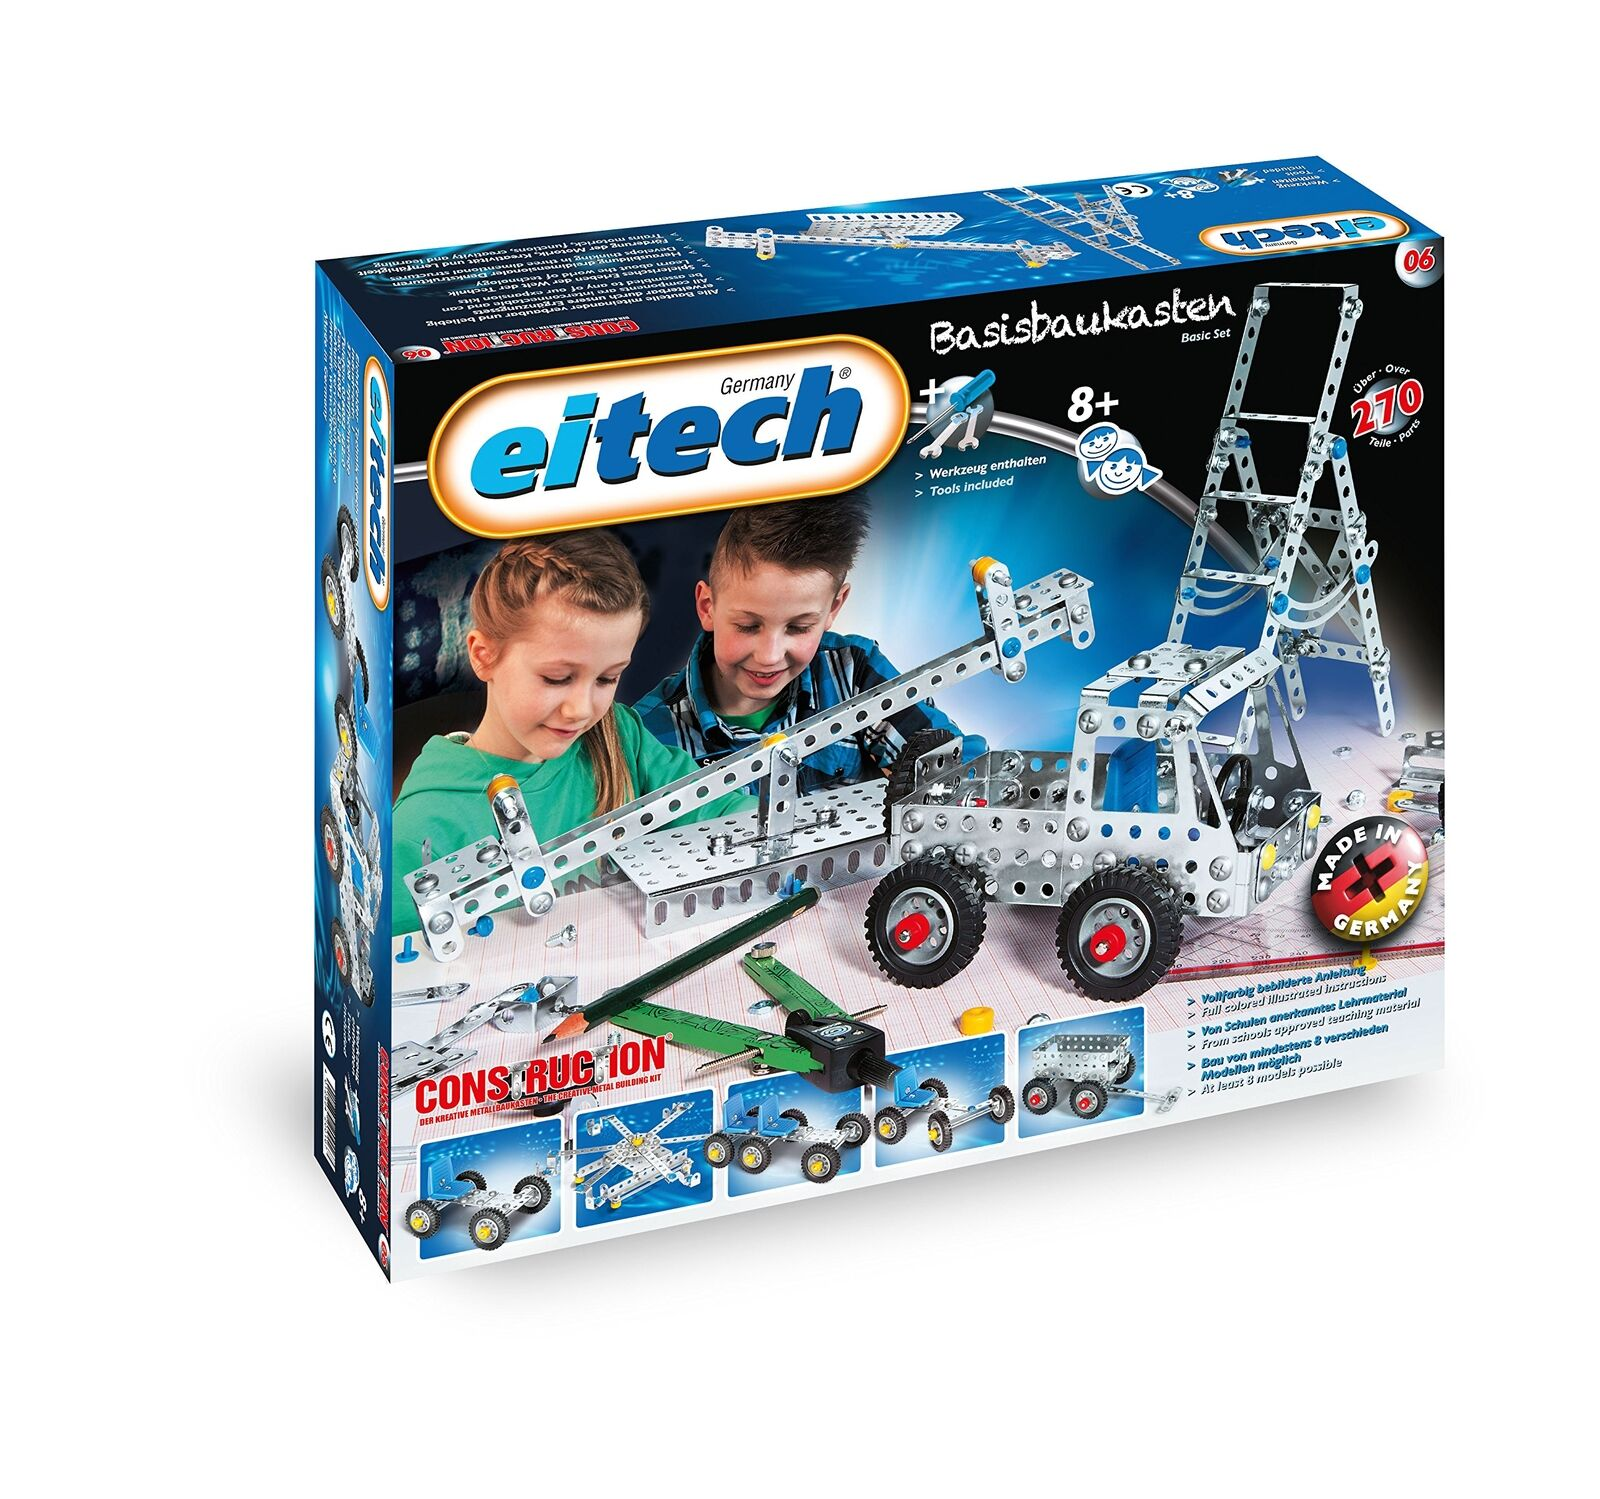 Eitech C06 Metal Construction Set Basic 270 Set 270 Basic Pieces Building Kit 934001